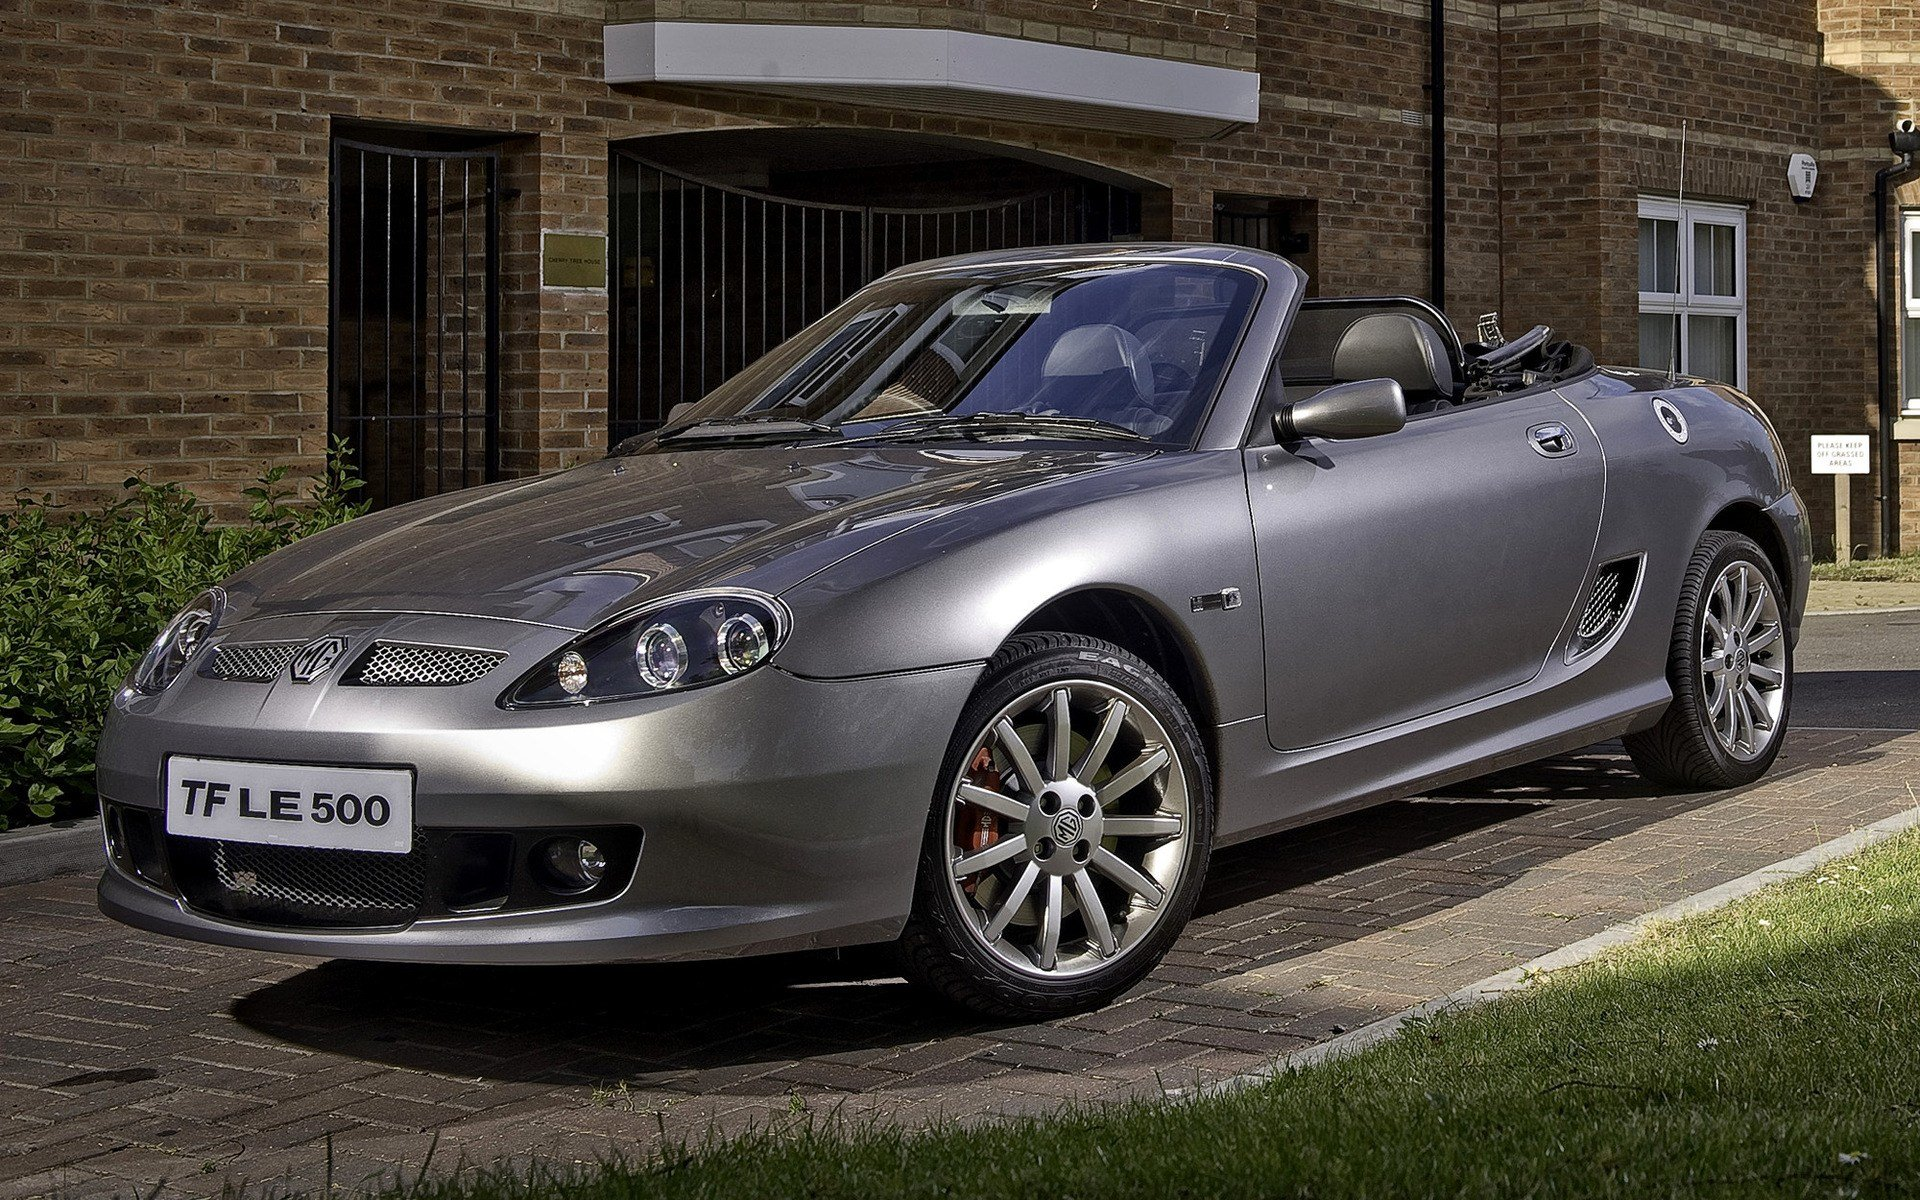 Latest Mg Tf Le 500 2008 Wallpapers And Hd Images Car Pixel Free Download